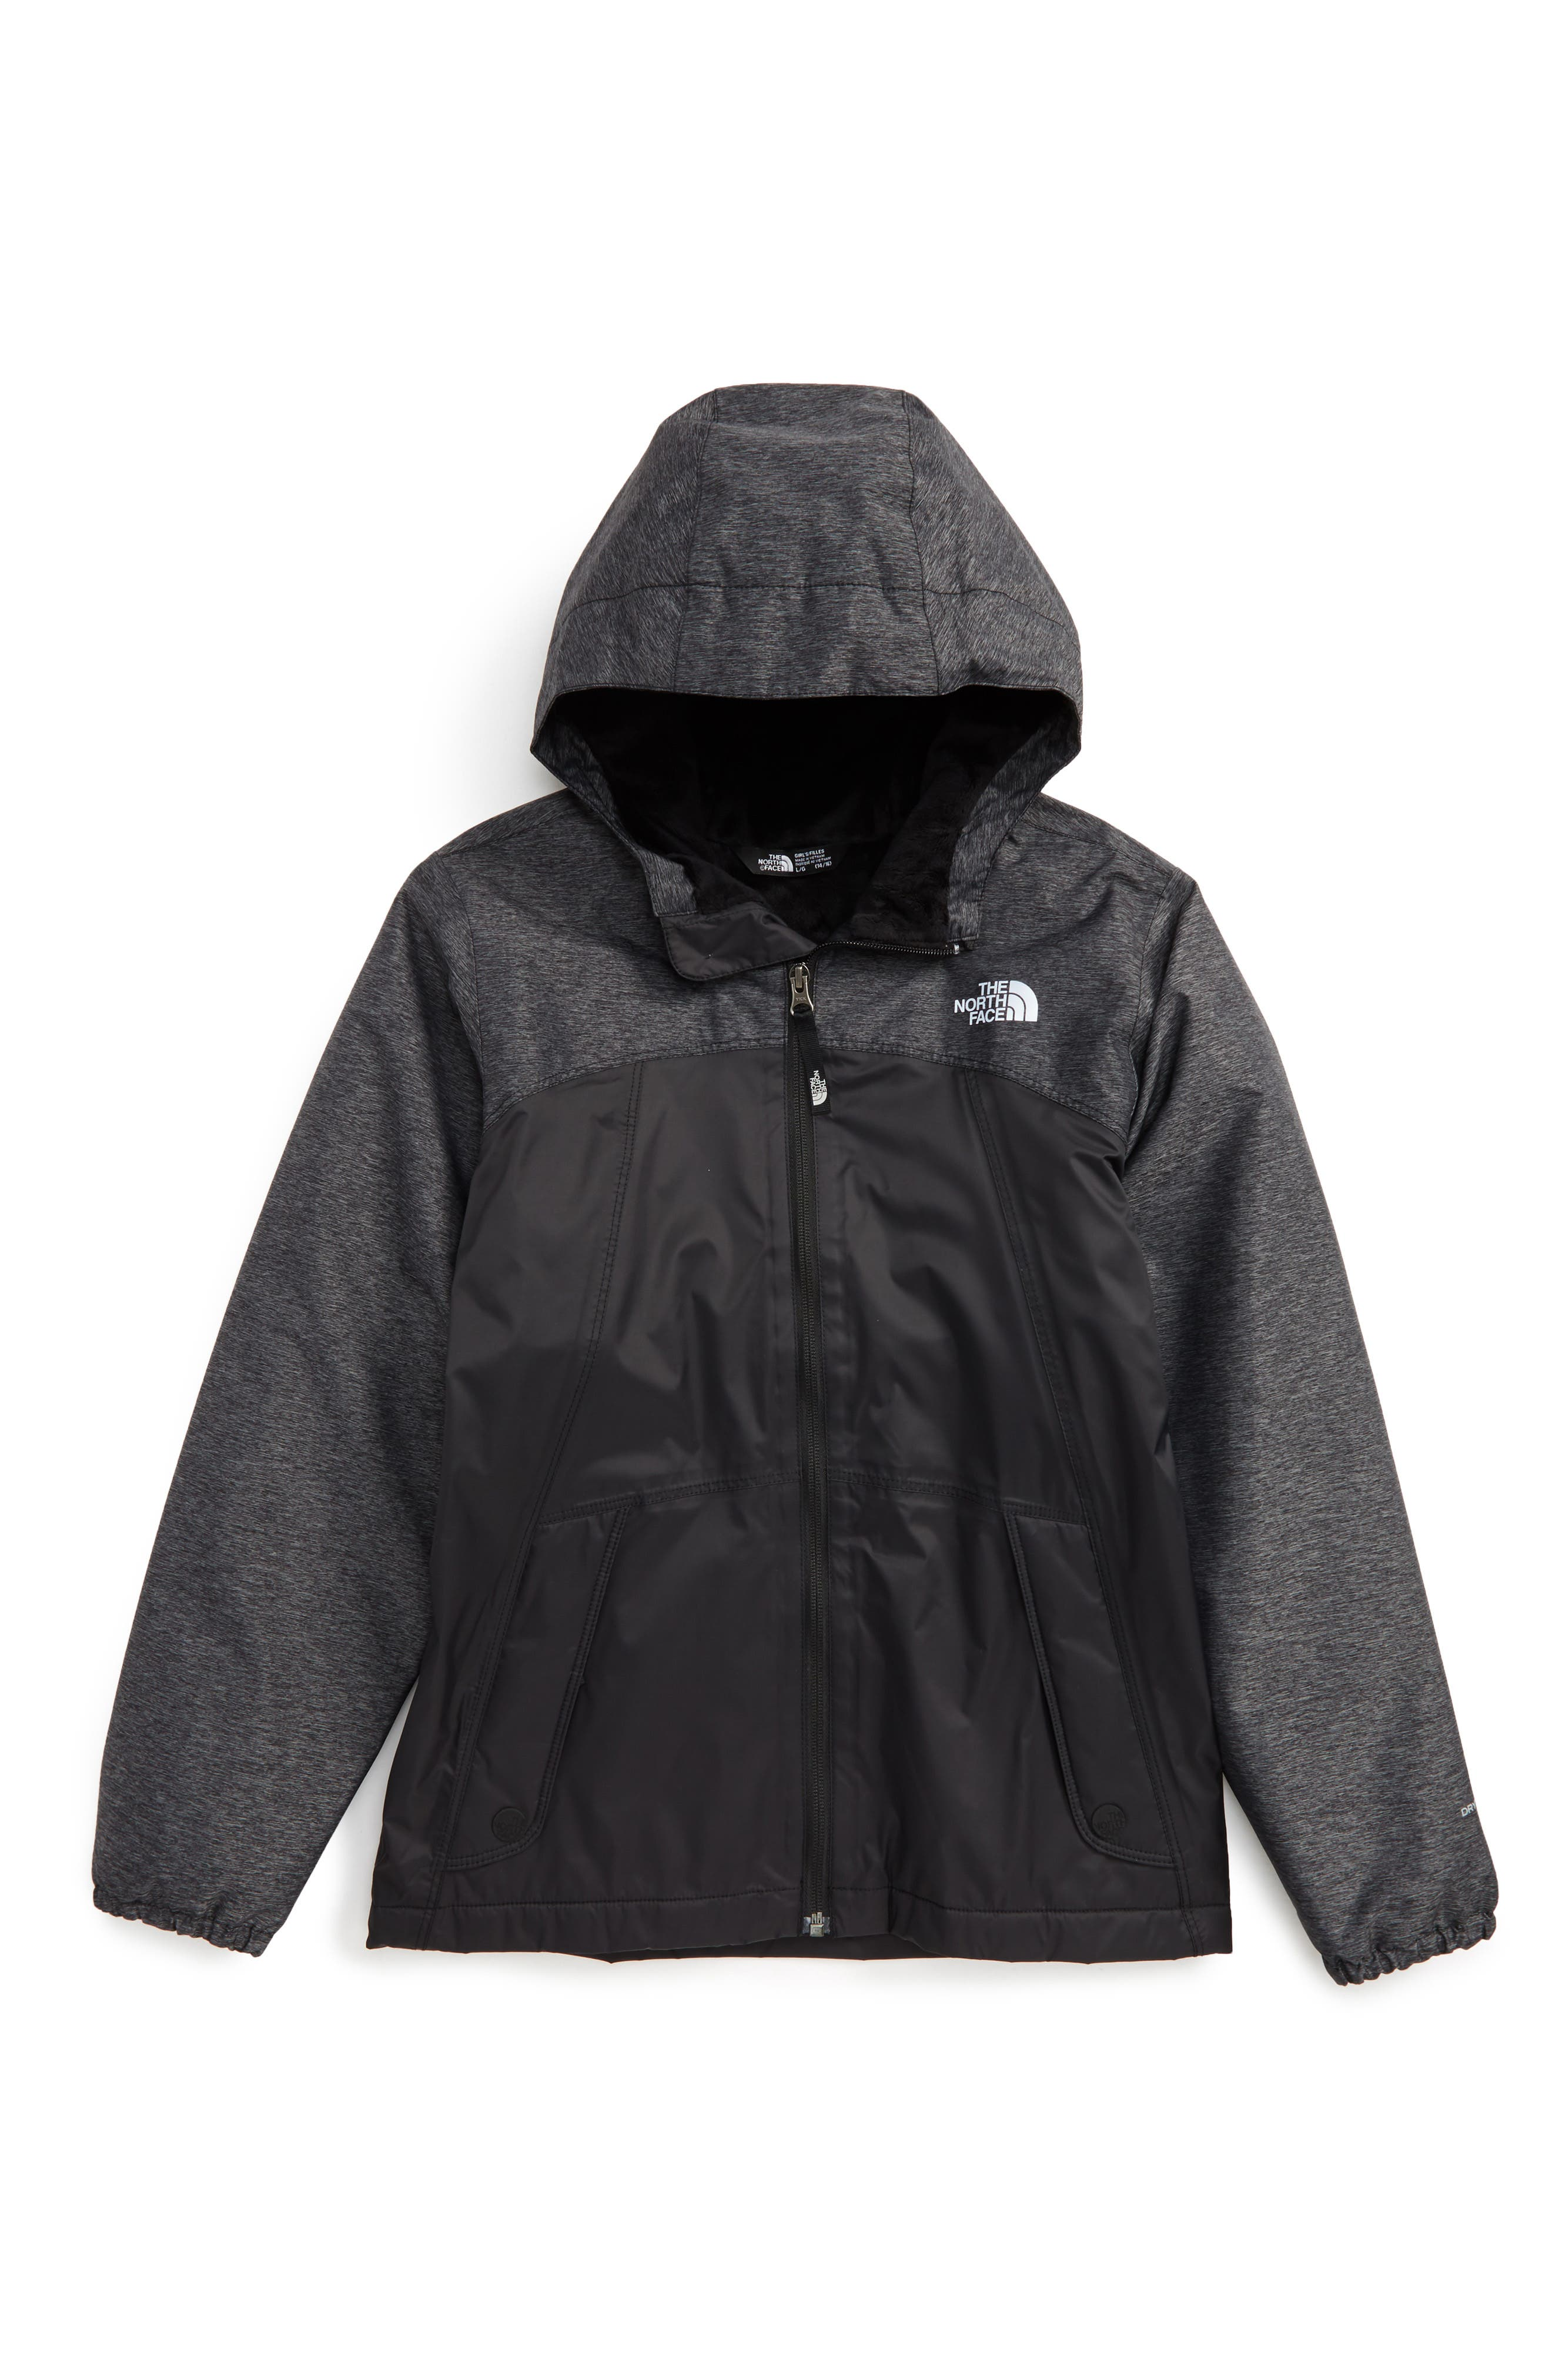 Main Image - The North Face Warm Storm Hooded Waterproof Jacket (Little Girls & Big Girls)